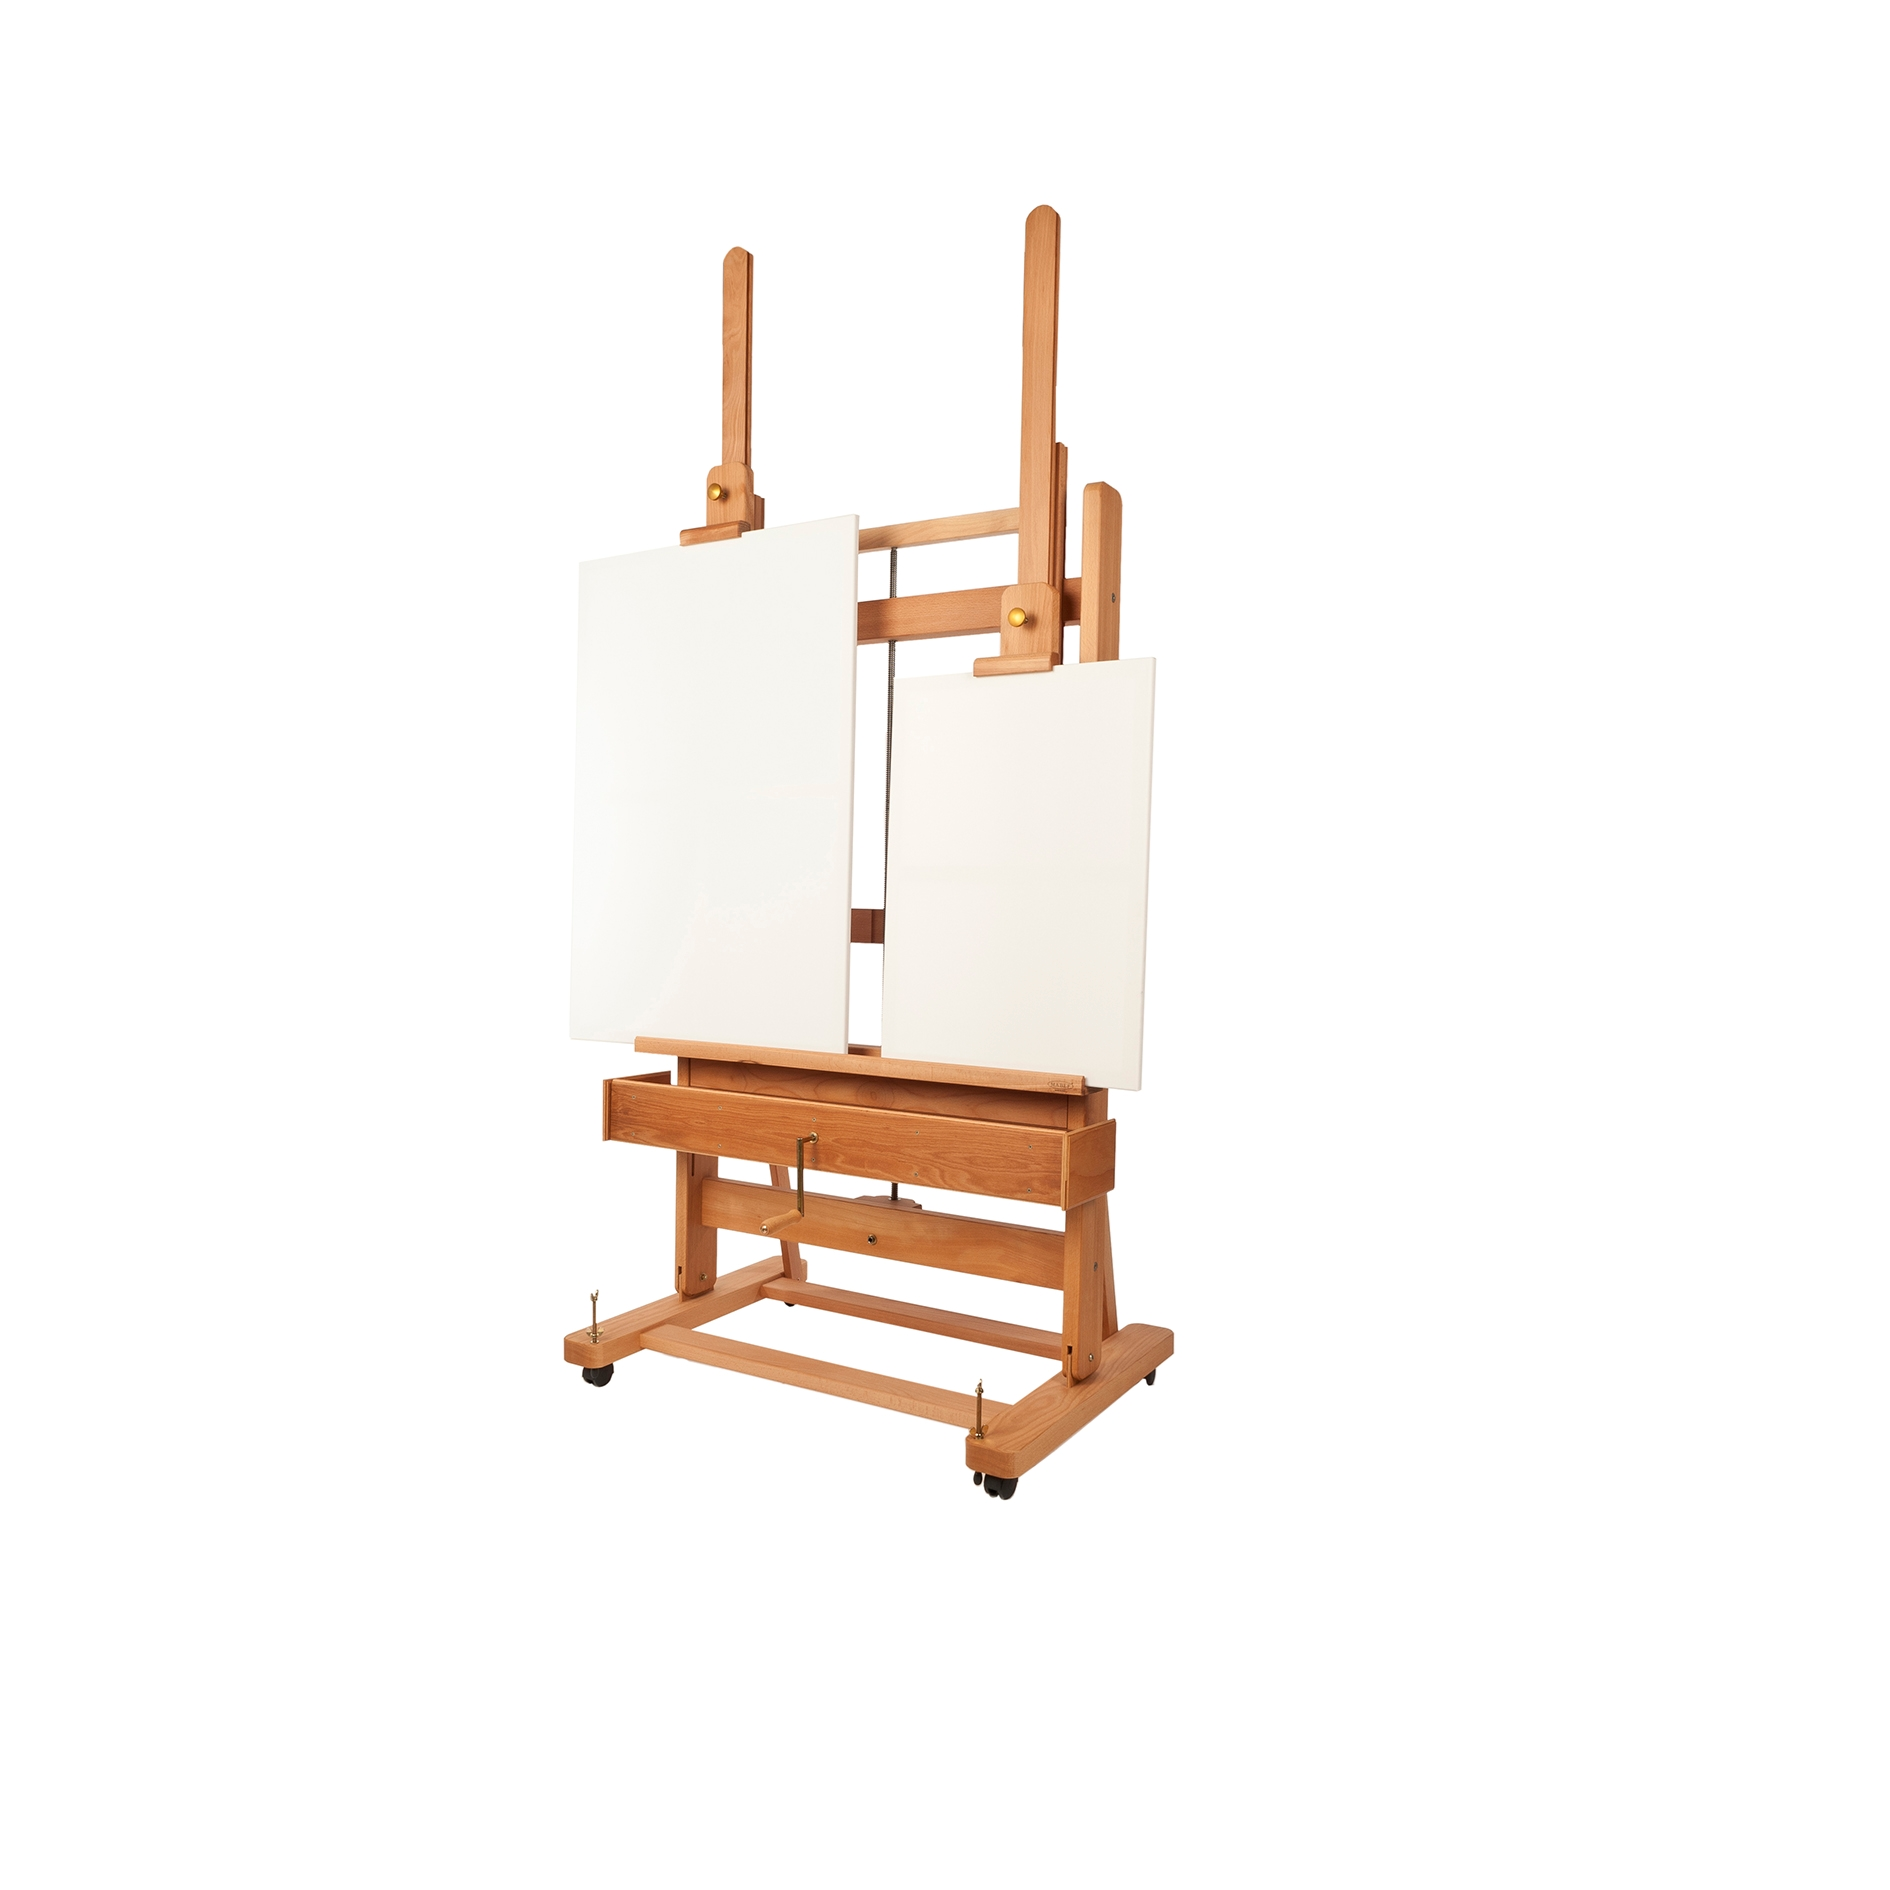 Mabef M02 Plus Lugano XStudio Easels are is available in-store and online at The PaintBox, home of the widest range of traditional and progressive Art Supplies in Adelaide. At The PaintBox we source and stock quality art supplies which we import directly. This means that you have access to a greater variety and pay less. These are perfect for any artists from amateur to professional. They are also perfect for any budget size. Check out our loyalty rewards programme, which makes your artistic ambitions achievable. At these prices why not give these a go. Be sure to check out our other fabulous finds on our website and start saving today. Our knowledgeable staff at The PaintBox can guide you through our carefully selected ranges of art supplies for all applications. This is only a small selection of our stock. We sell many brands, weights, and textures, in-store only. Please call 08 8388 7776 to enquire. We offer art tuition too! MABEF M02 PLUS LUGANO STUDIO EASELS CAN BE DELIVERED ANYWHERE WITHIN AUSTRALIA OR NEW ZEALAND